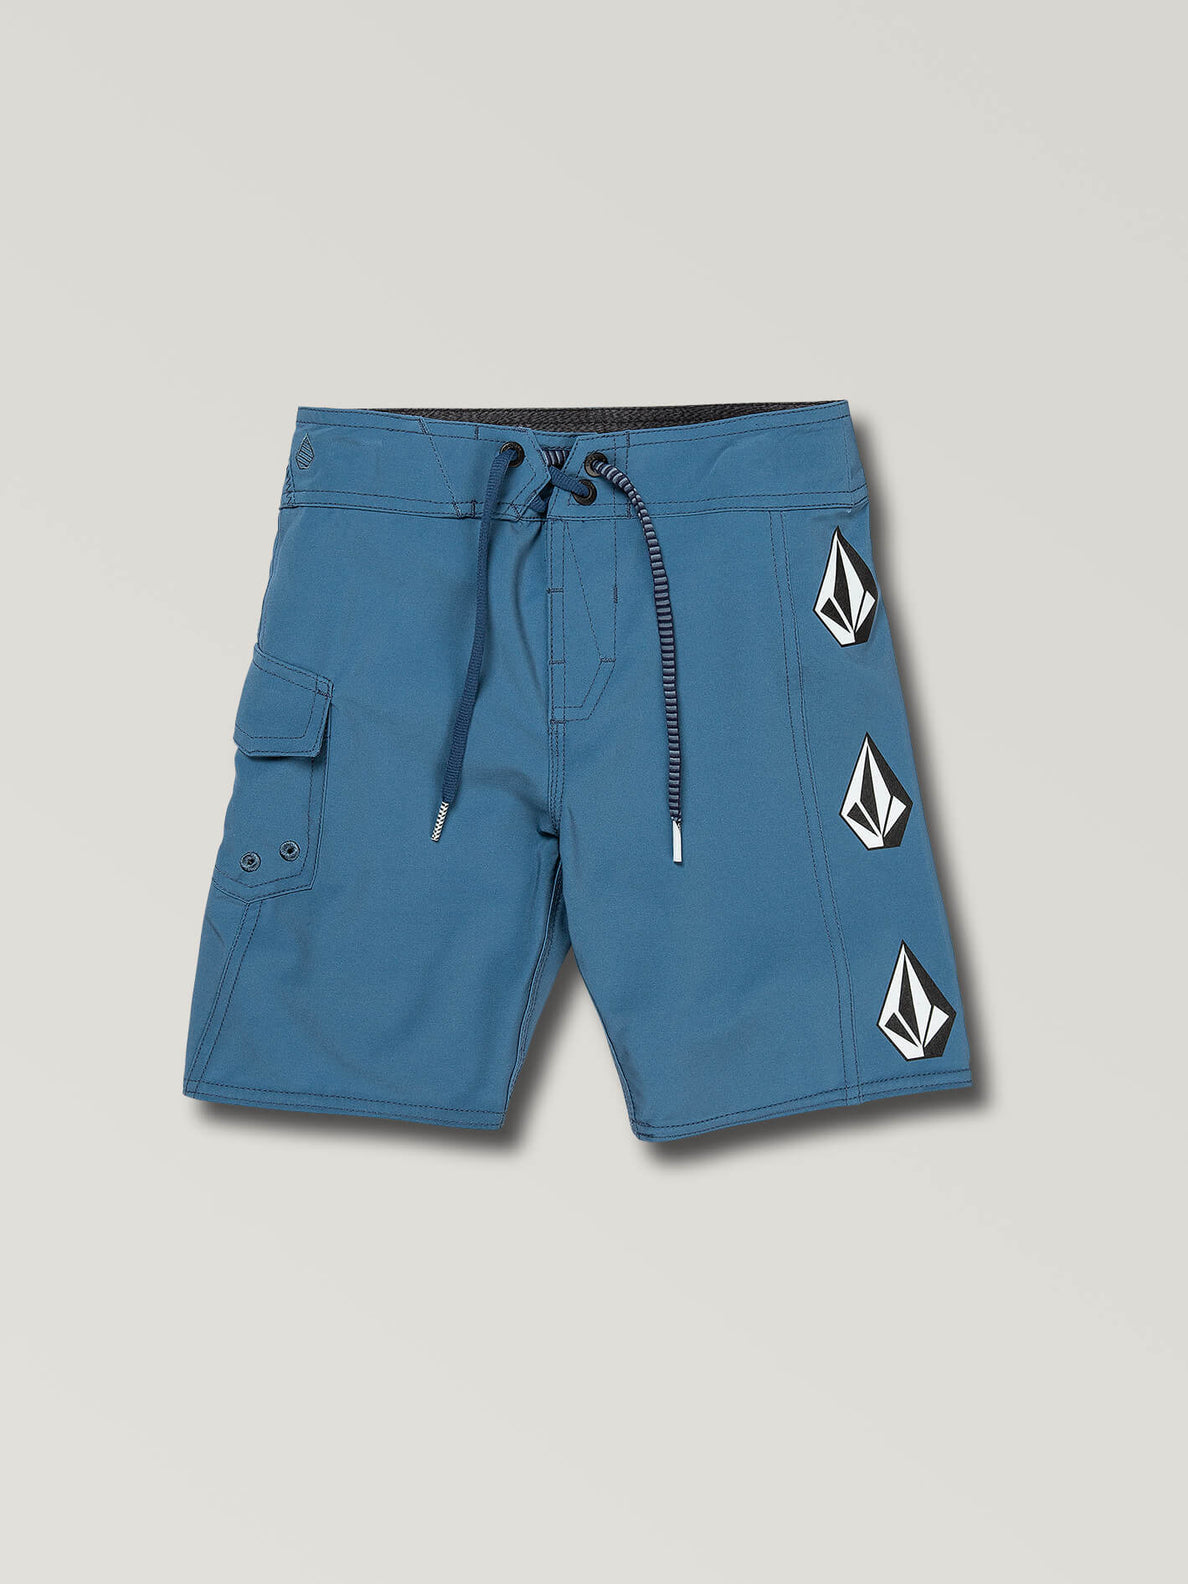 Little Boys Deadly Stones Mod Boardshorts In Airforce Blue, Front View